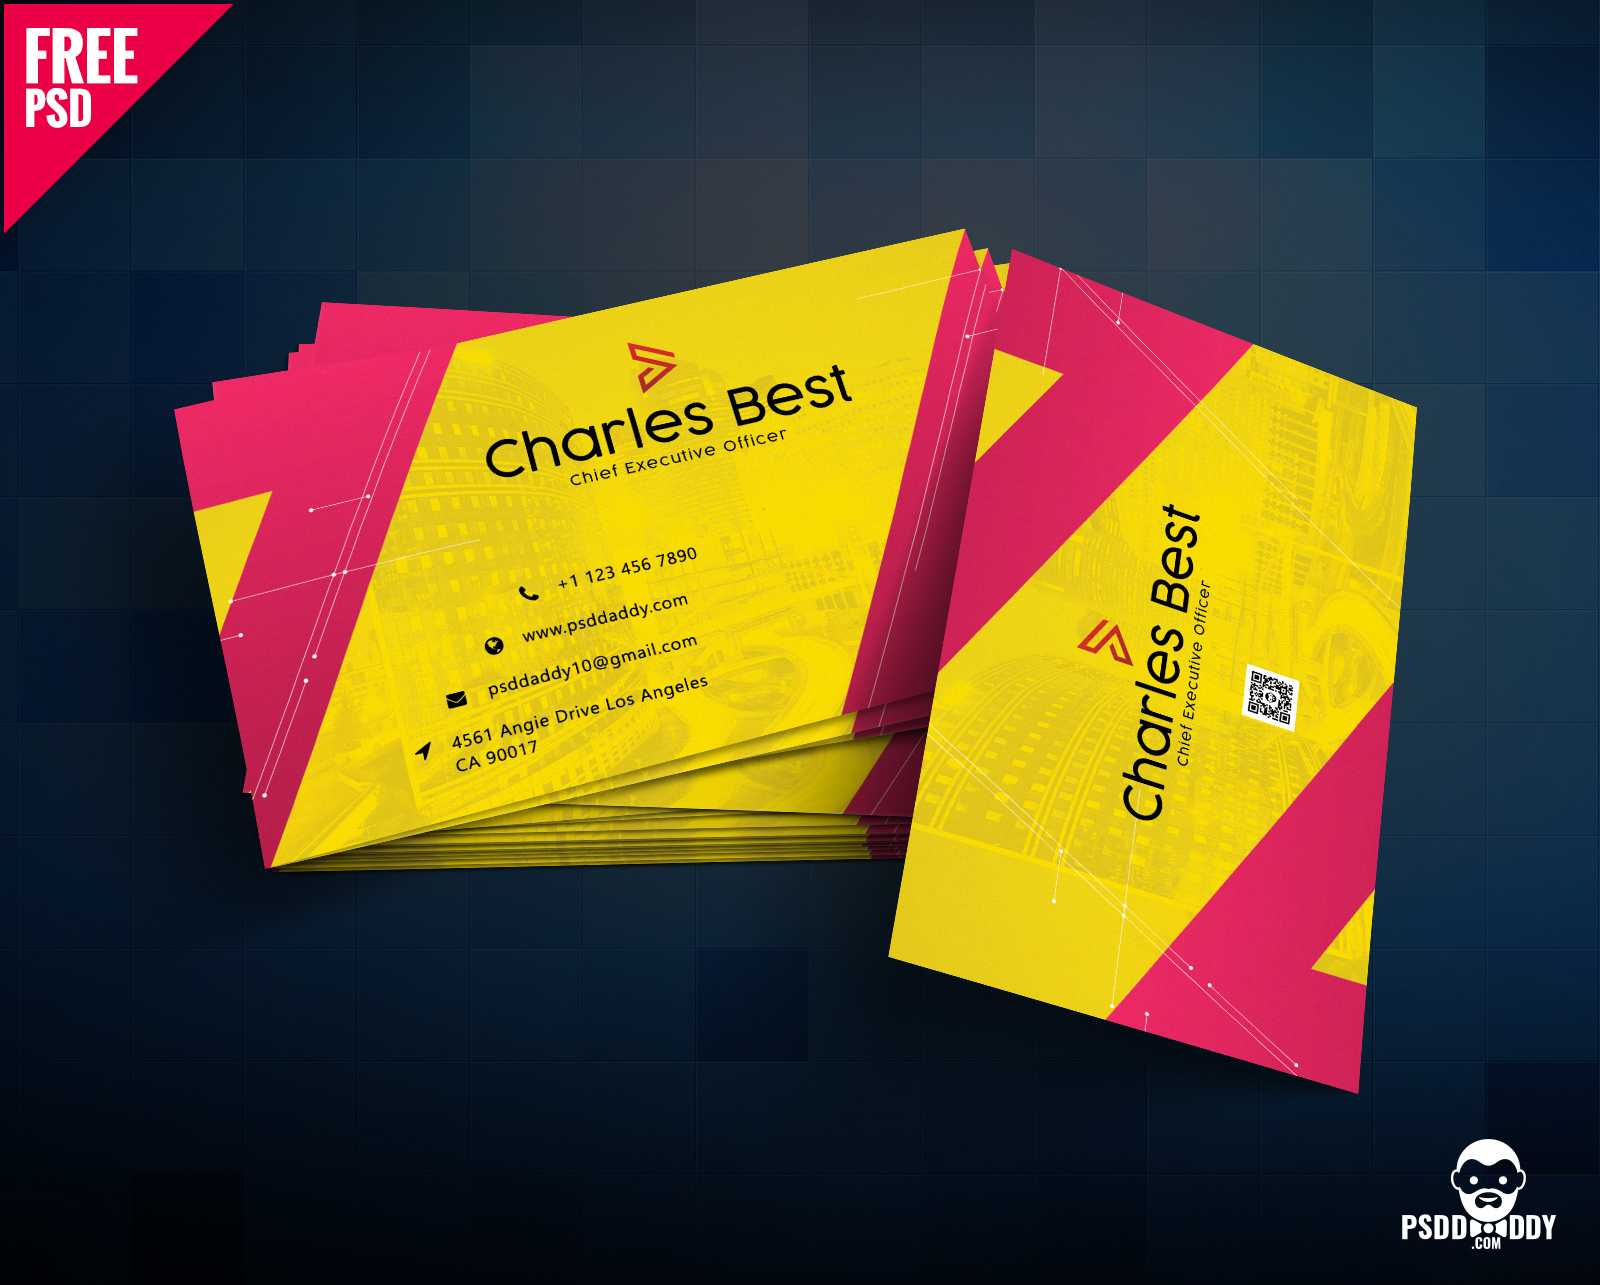 Download] Creative Business Card Free Psd | Psddaddy Throughout Photoshop Business Card Template With Bleed